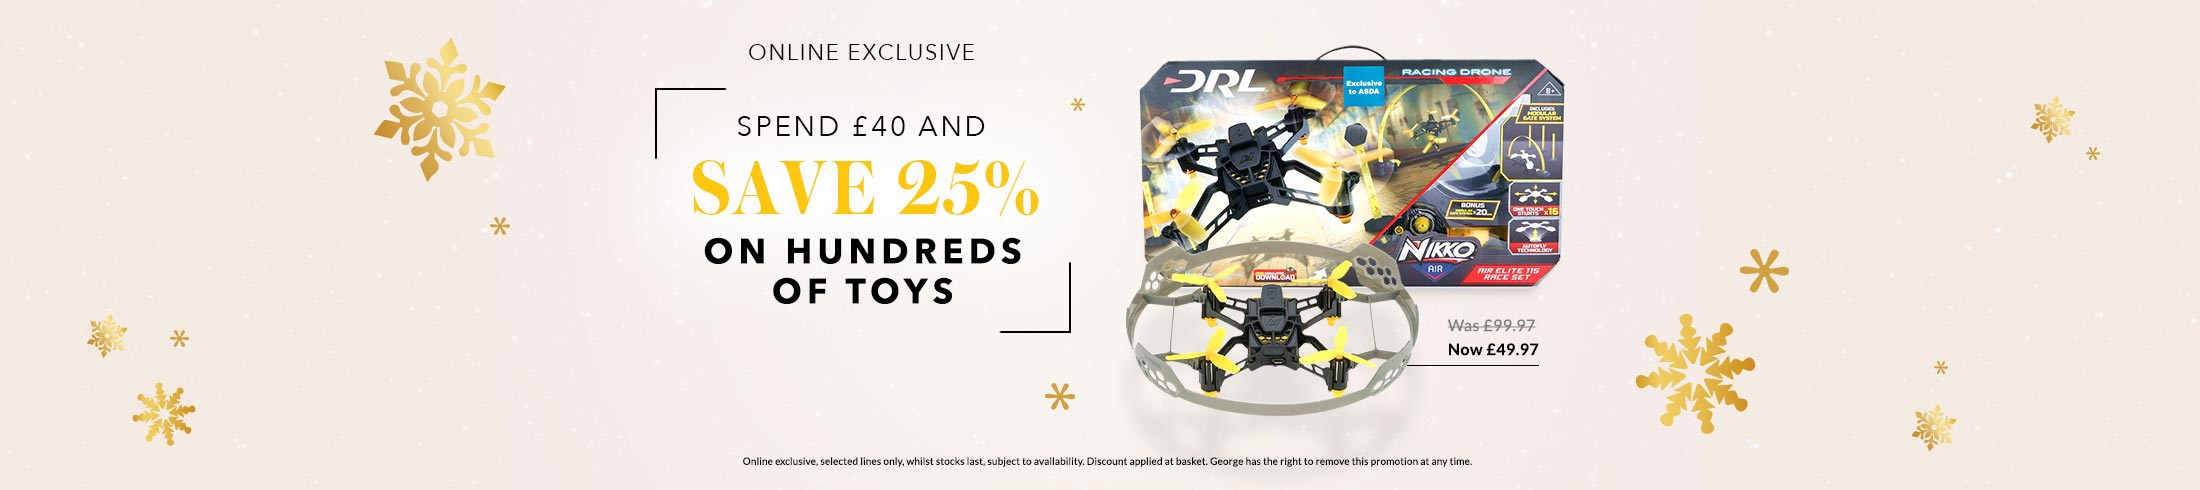 Save 25% on hundreds of toys when you spend £40